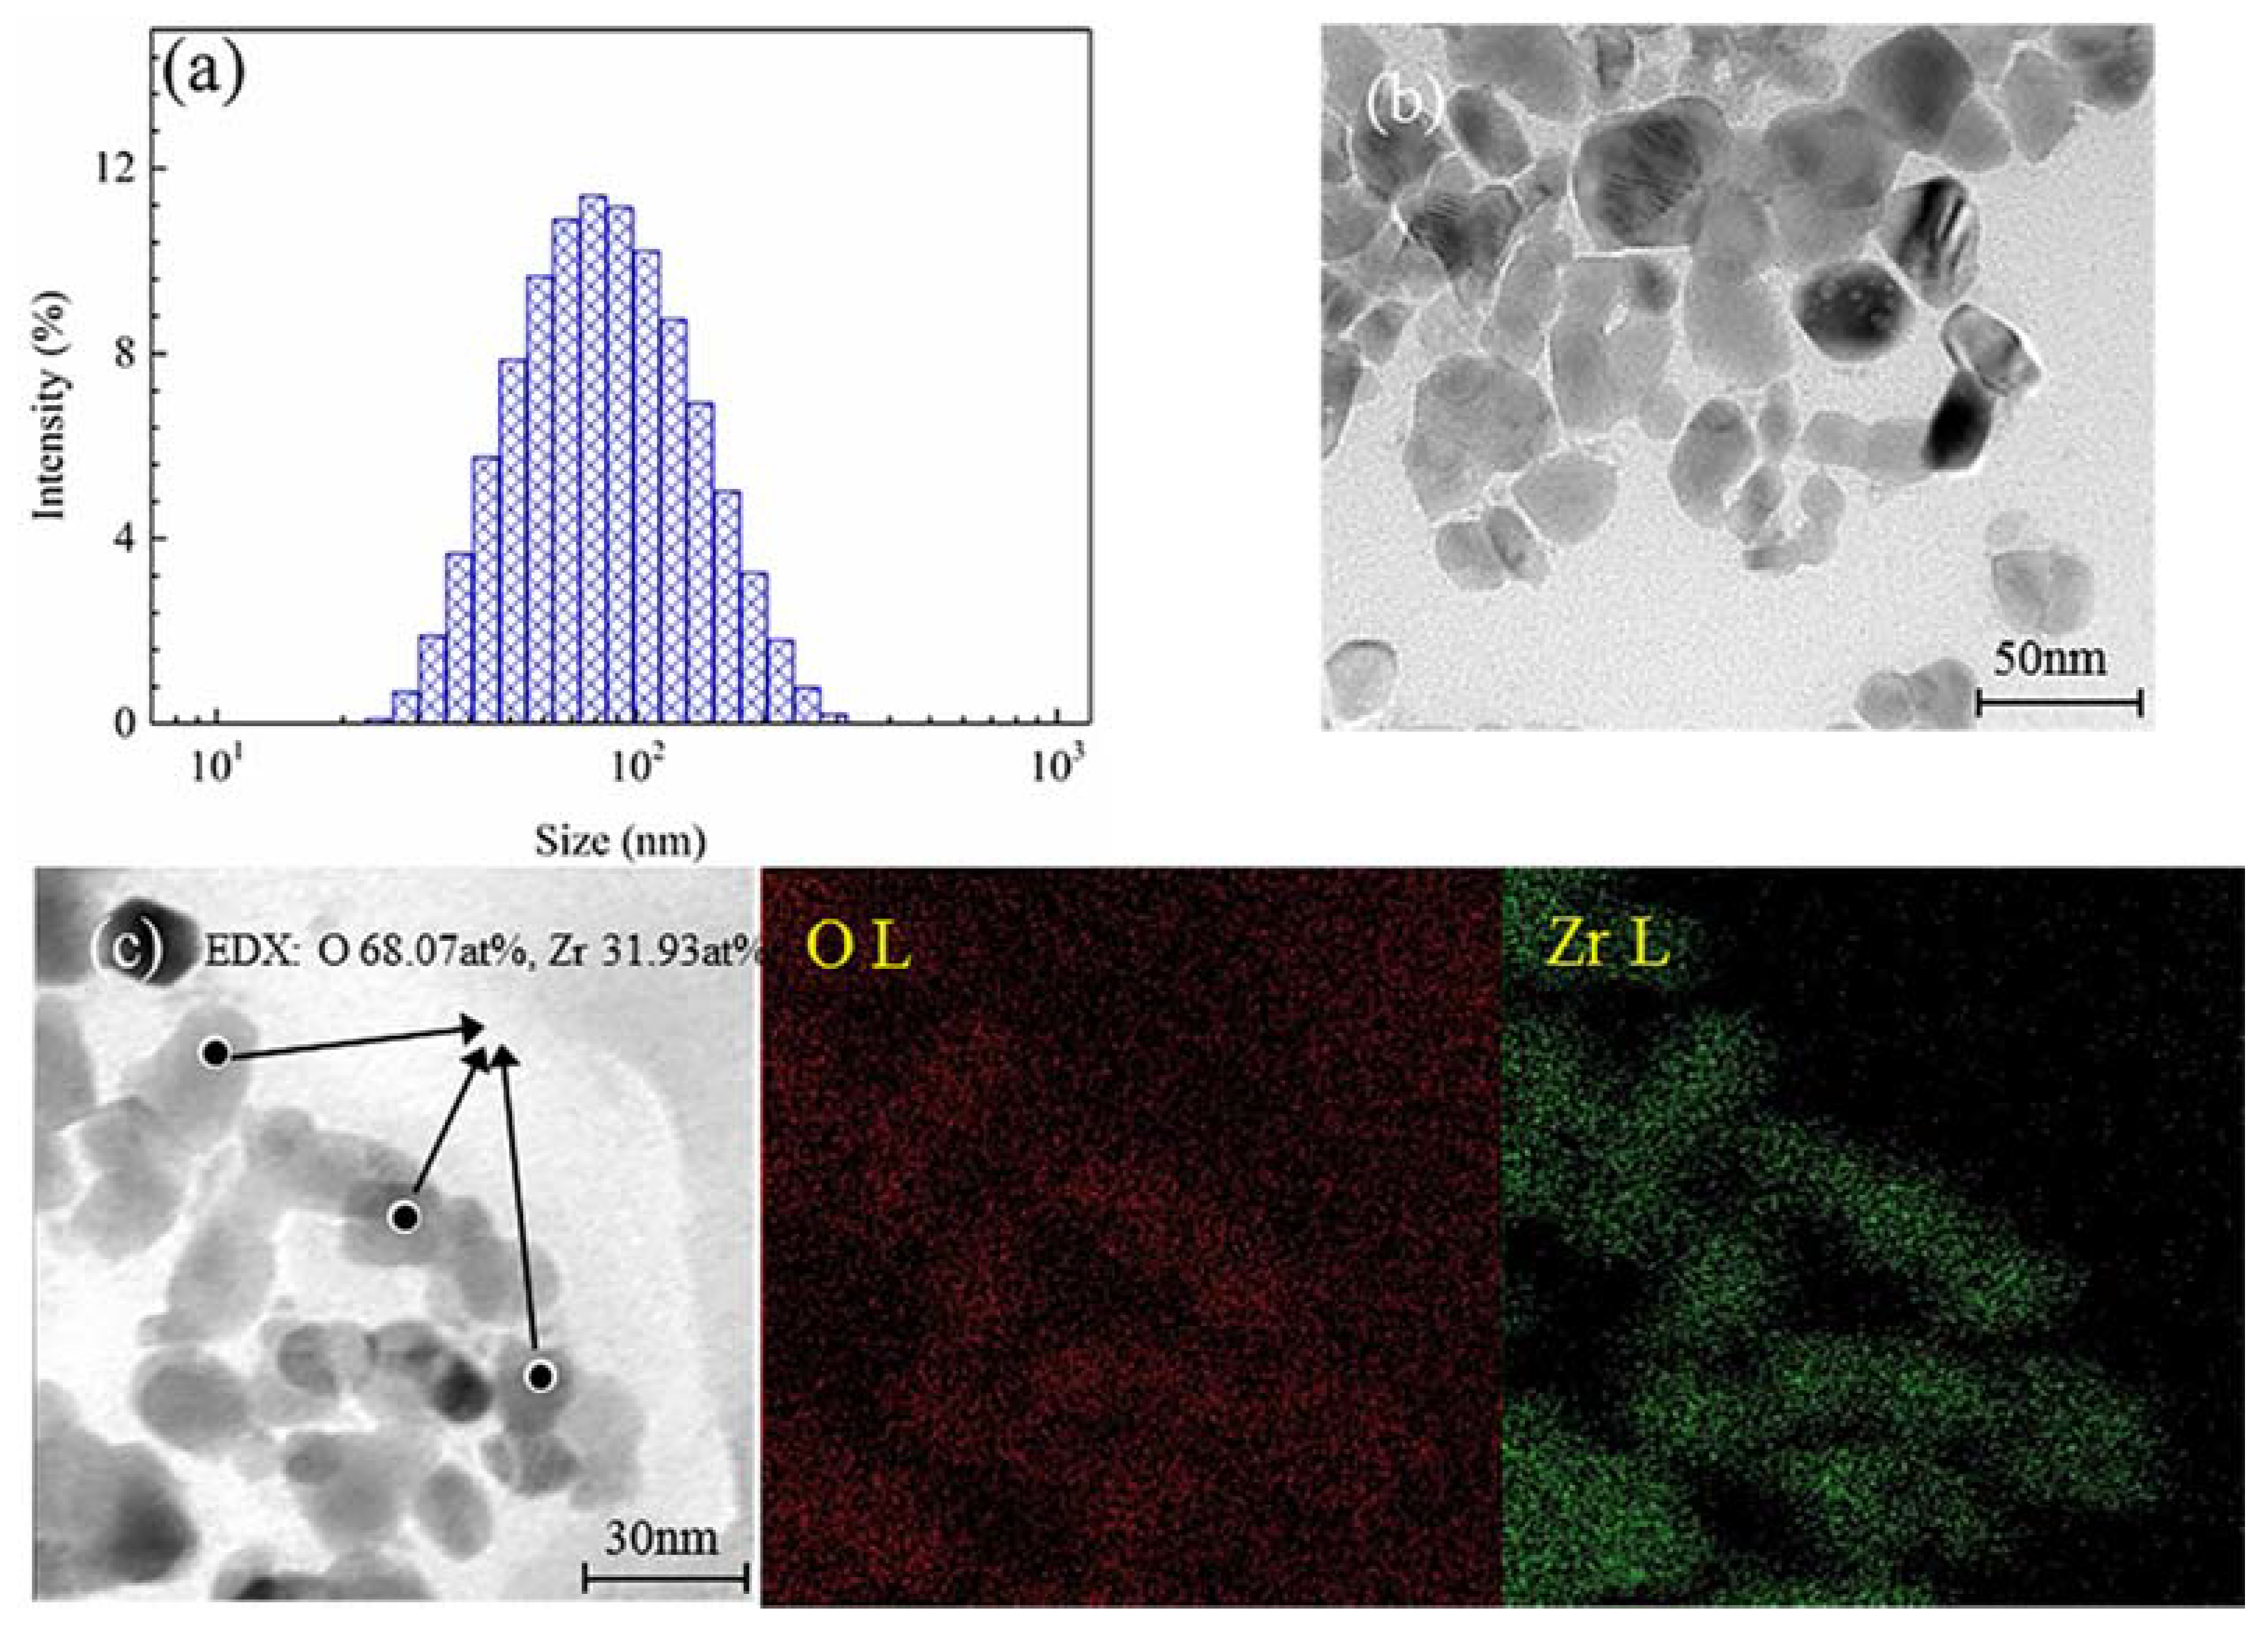 Materials Free Full Text Corrosion Performance Of Nano Zro2 Modified Coatings In Hot Mixed Acid Solutions Html